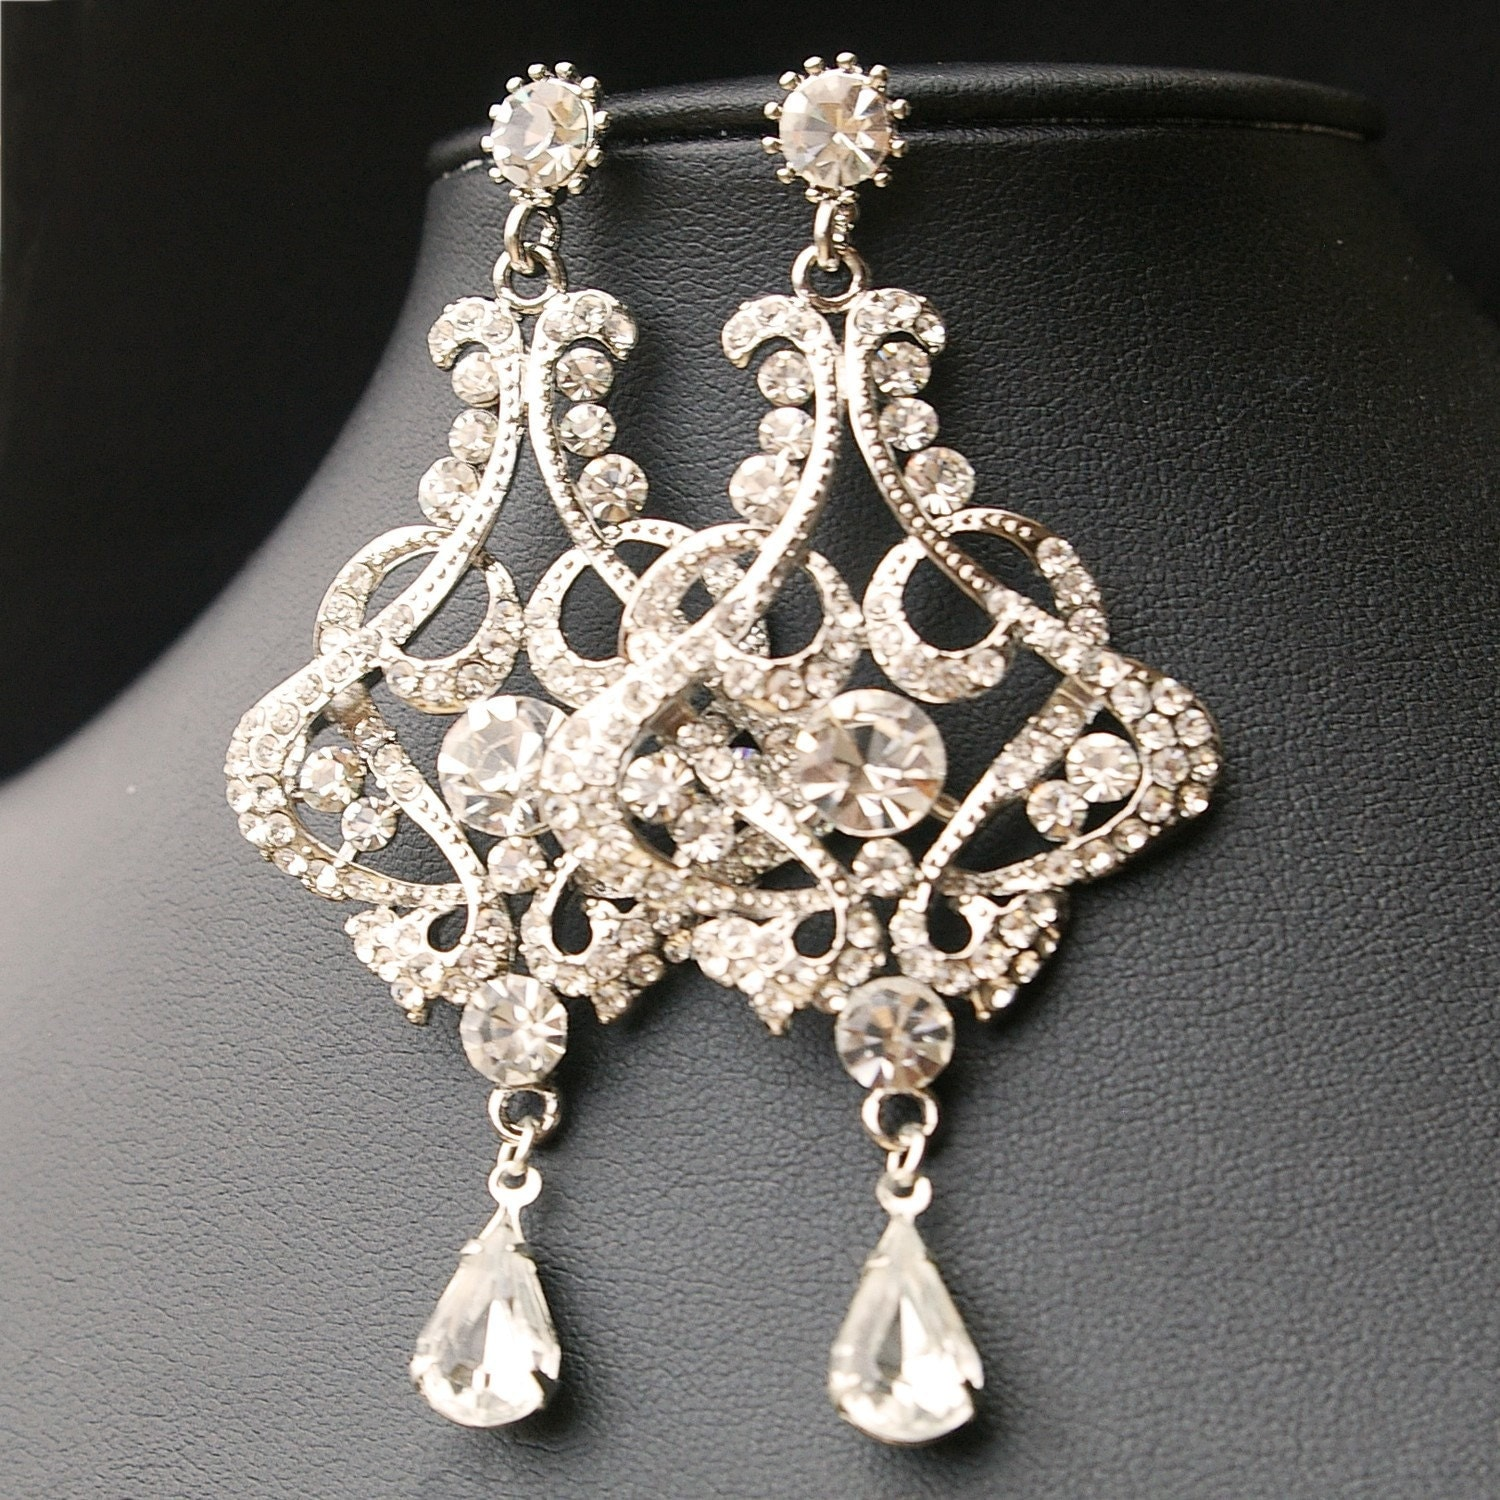 vintage style chandelier earrings could boss